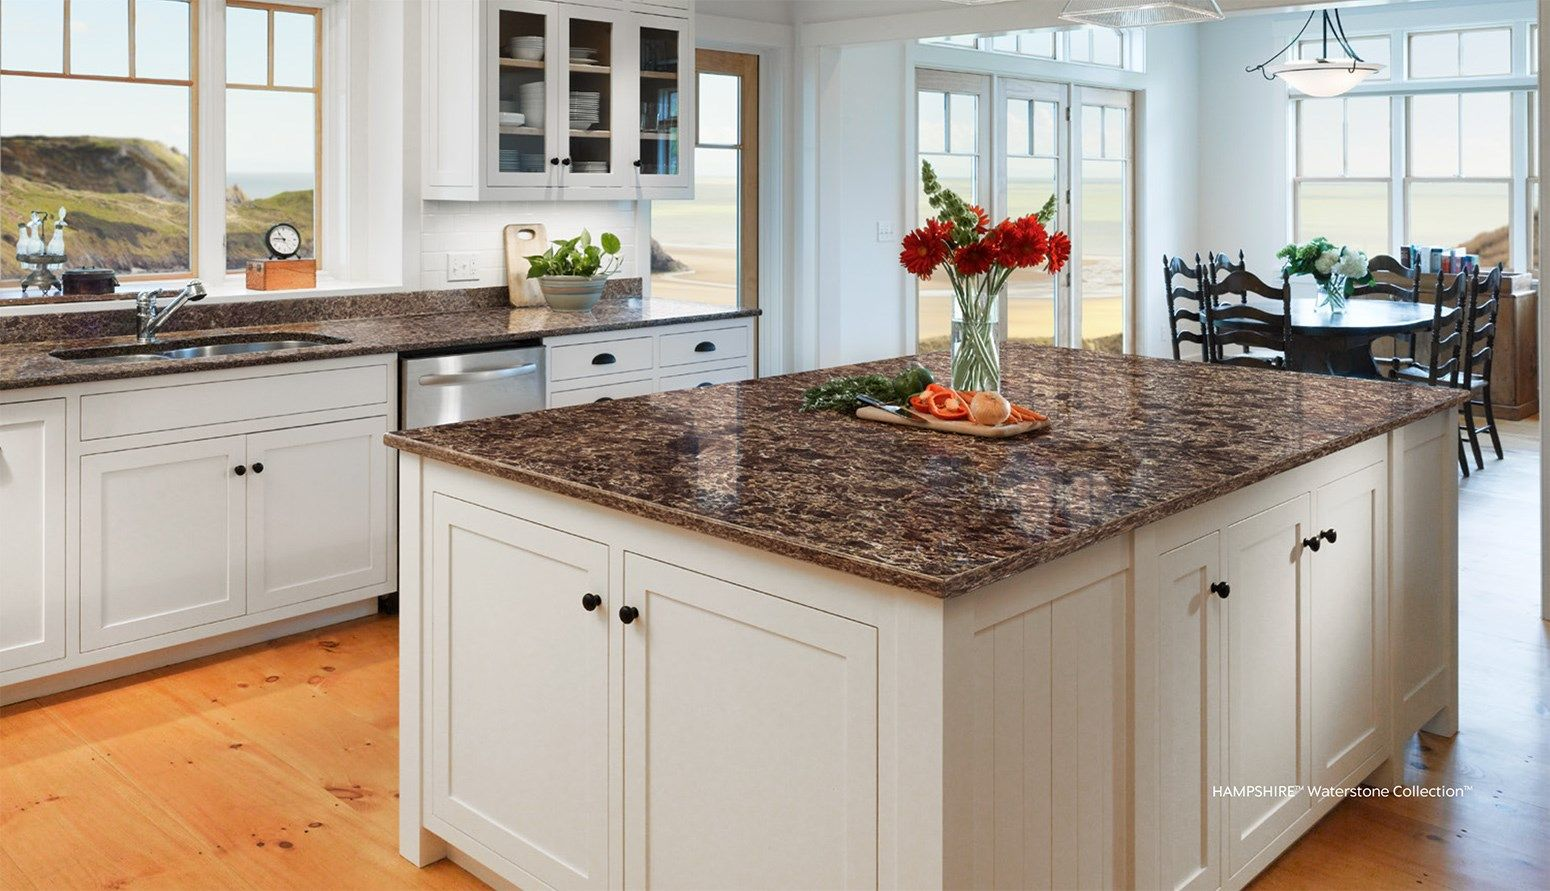 Mouser usa kitchens and baths manufacturer - Countertops